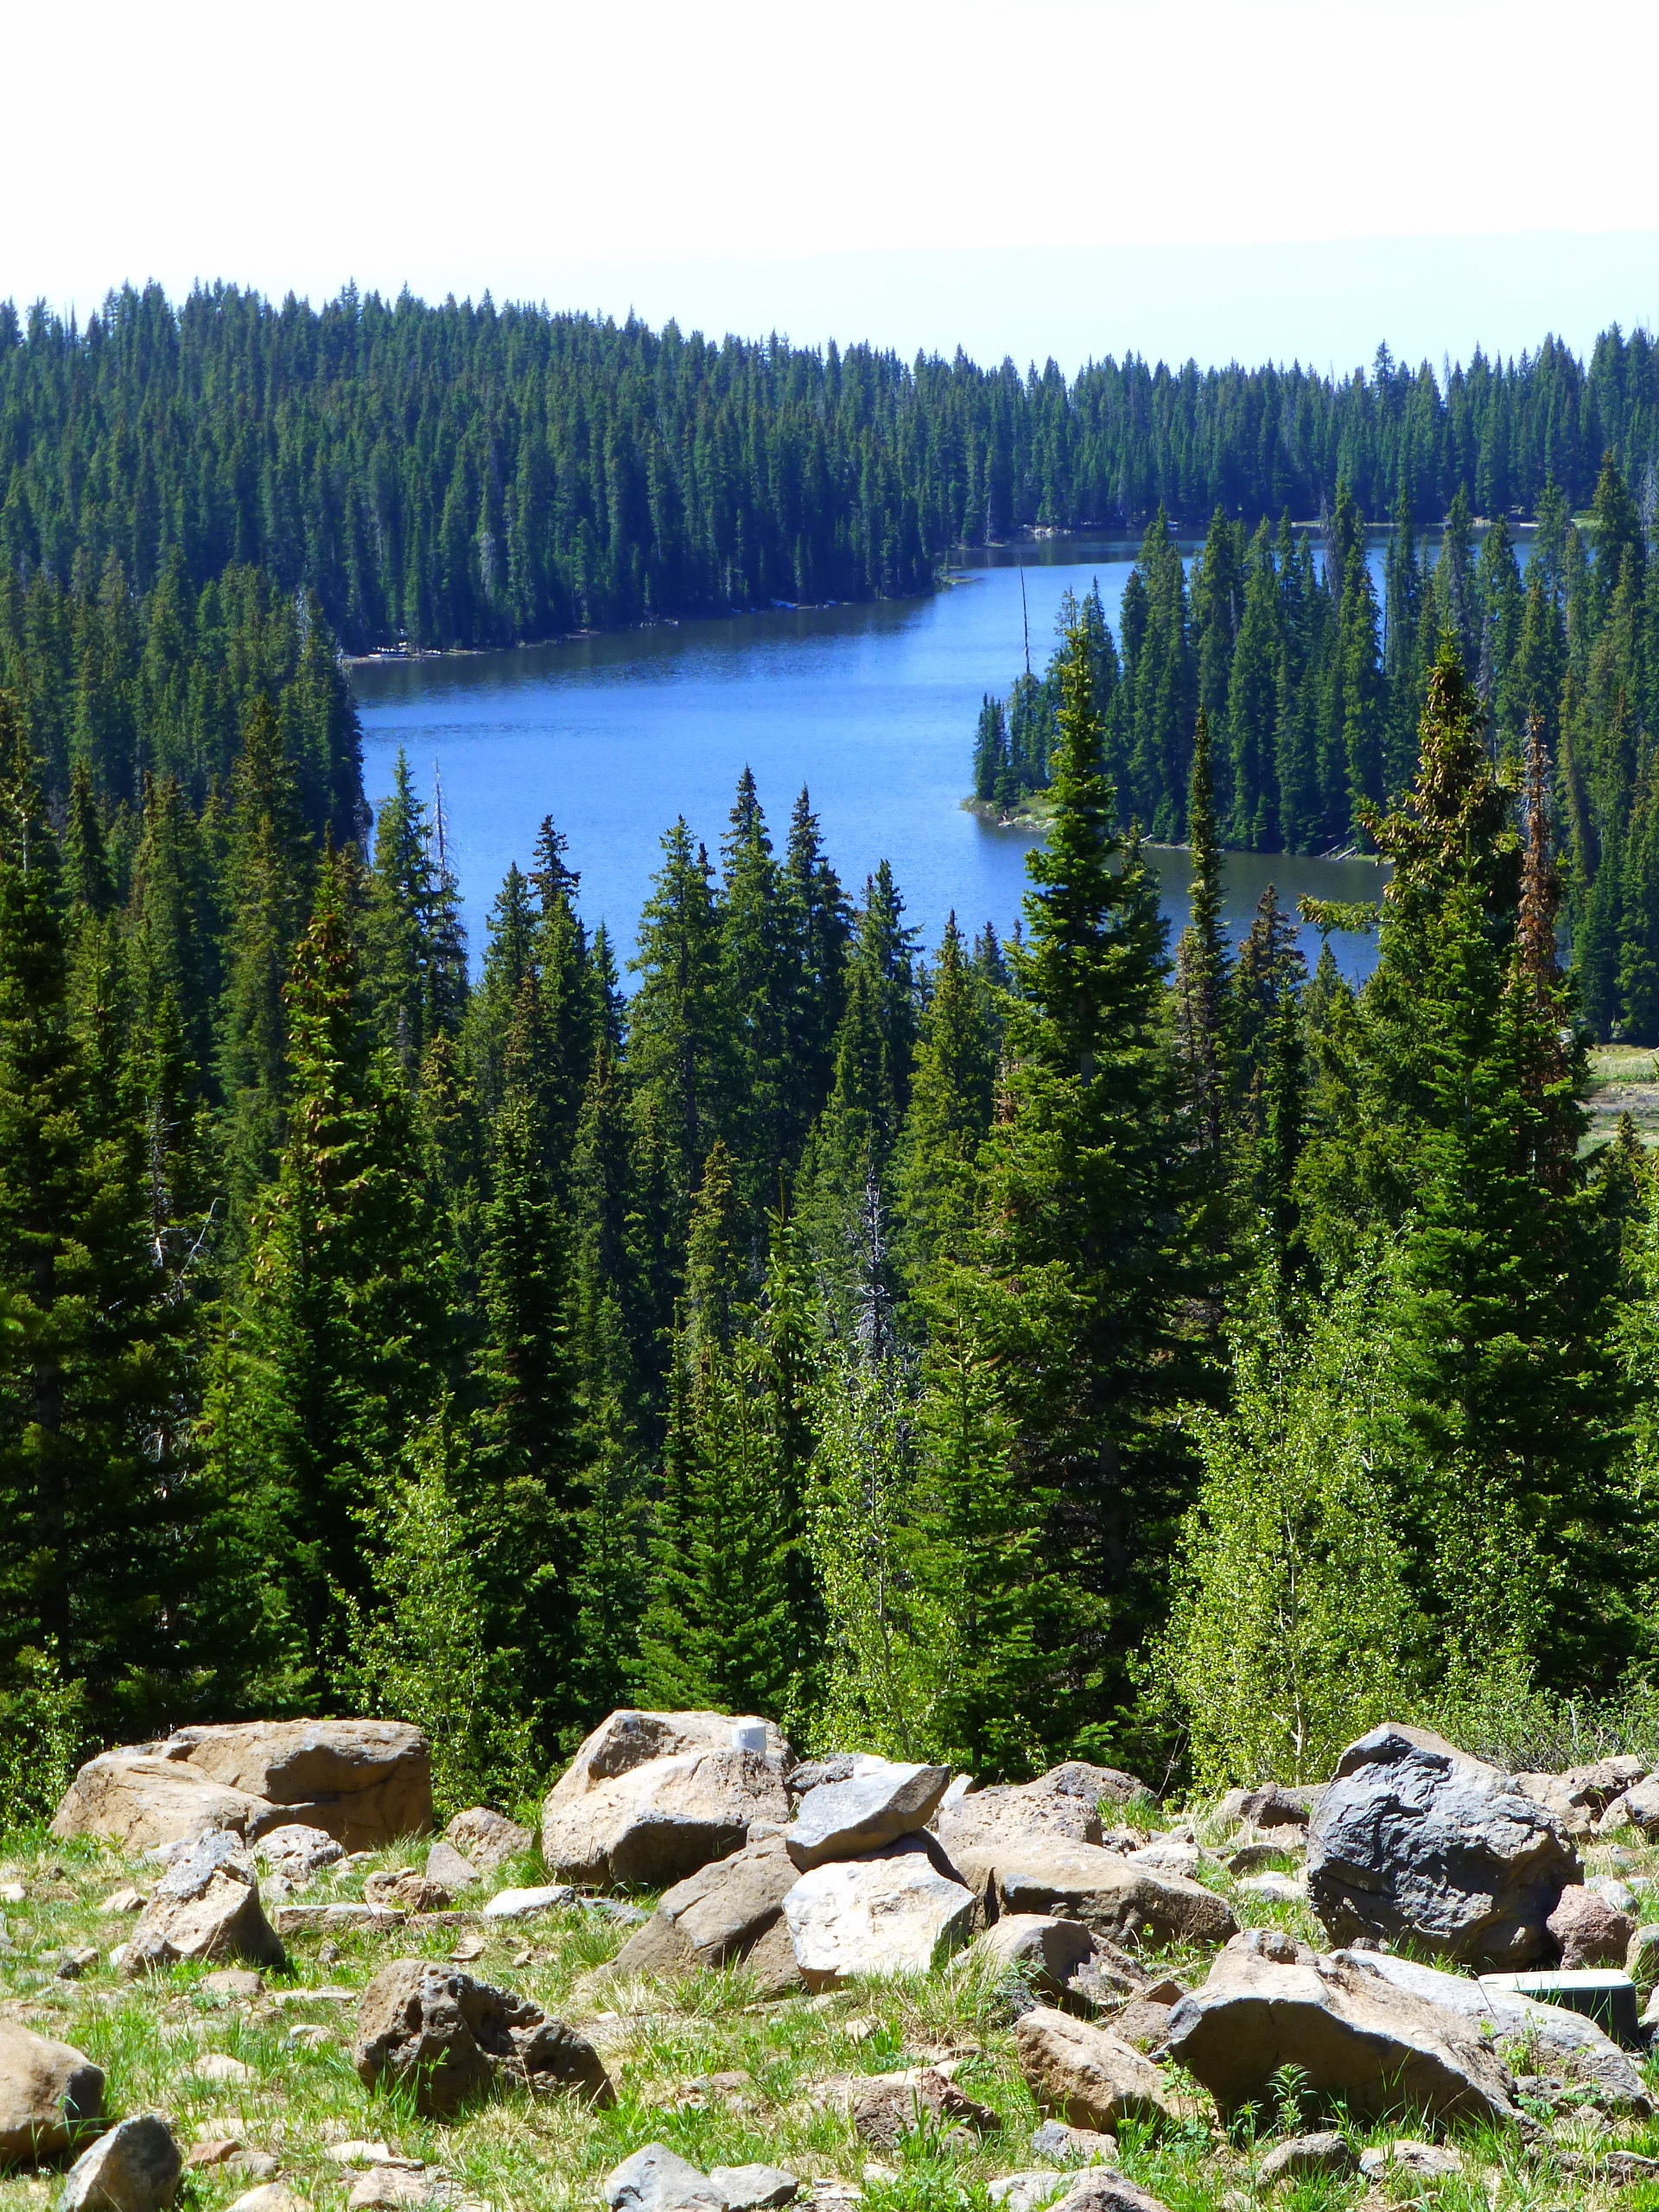 One of Grand Mesa's 300 lakes